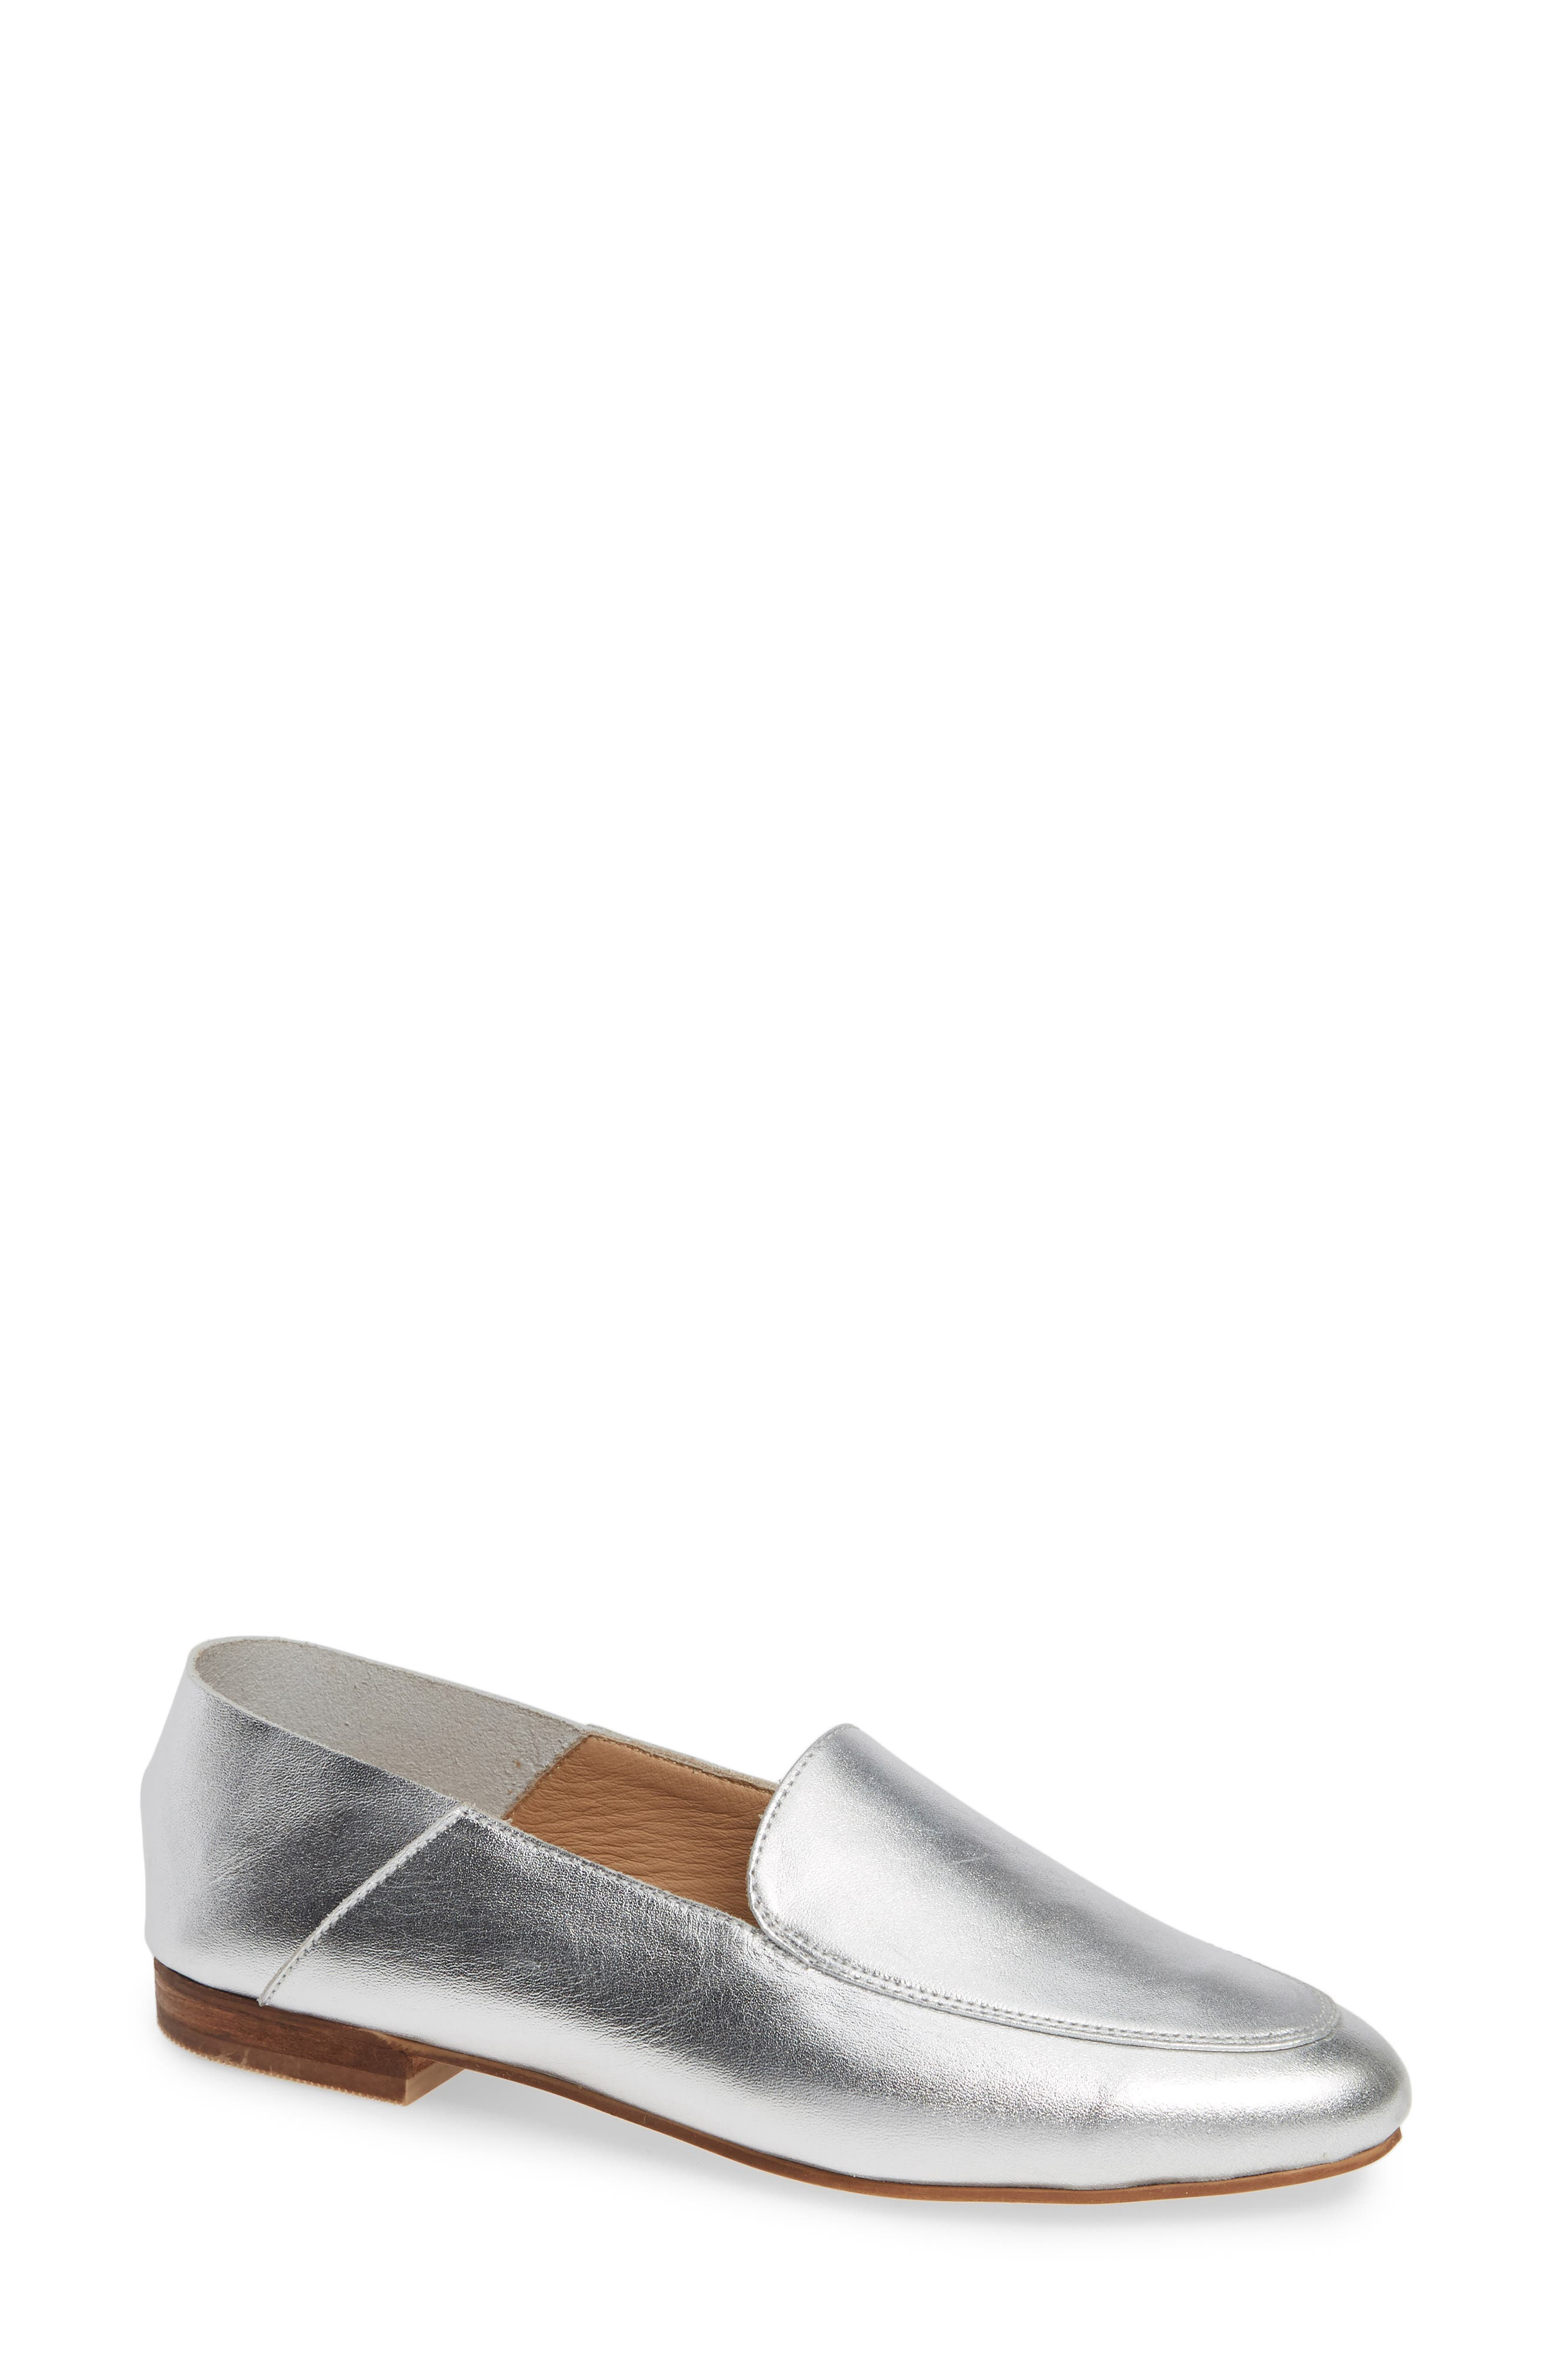 KAANAS Pisa Loafer in Silver Leather